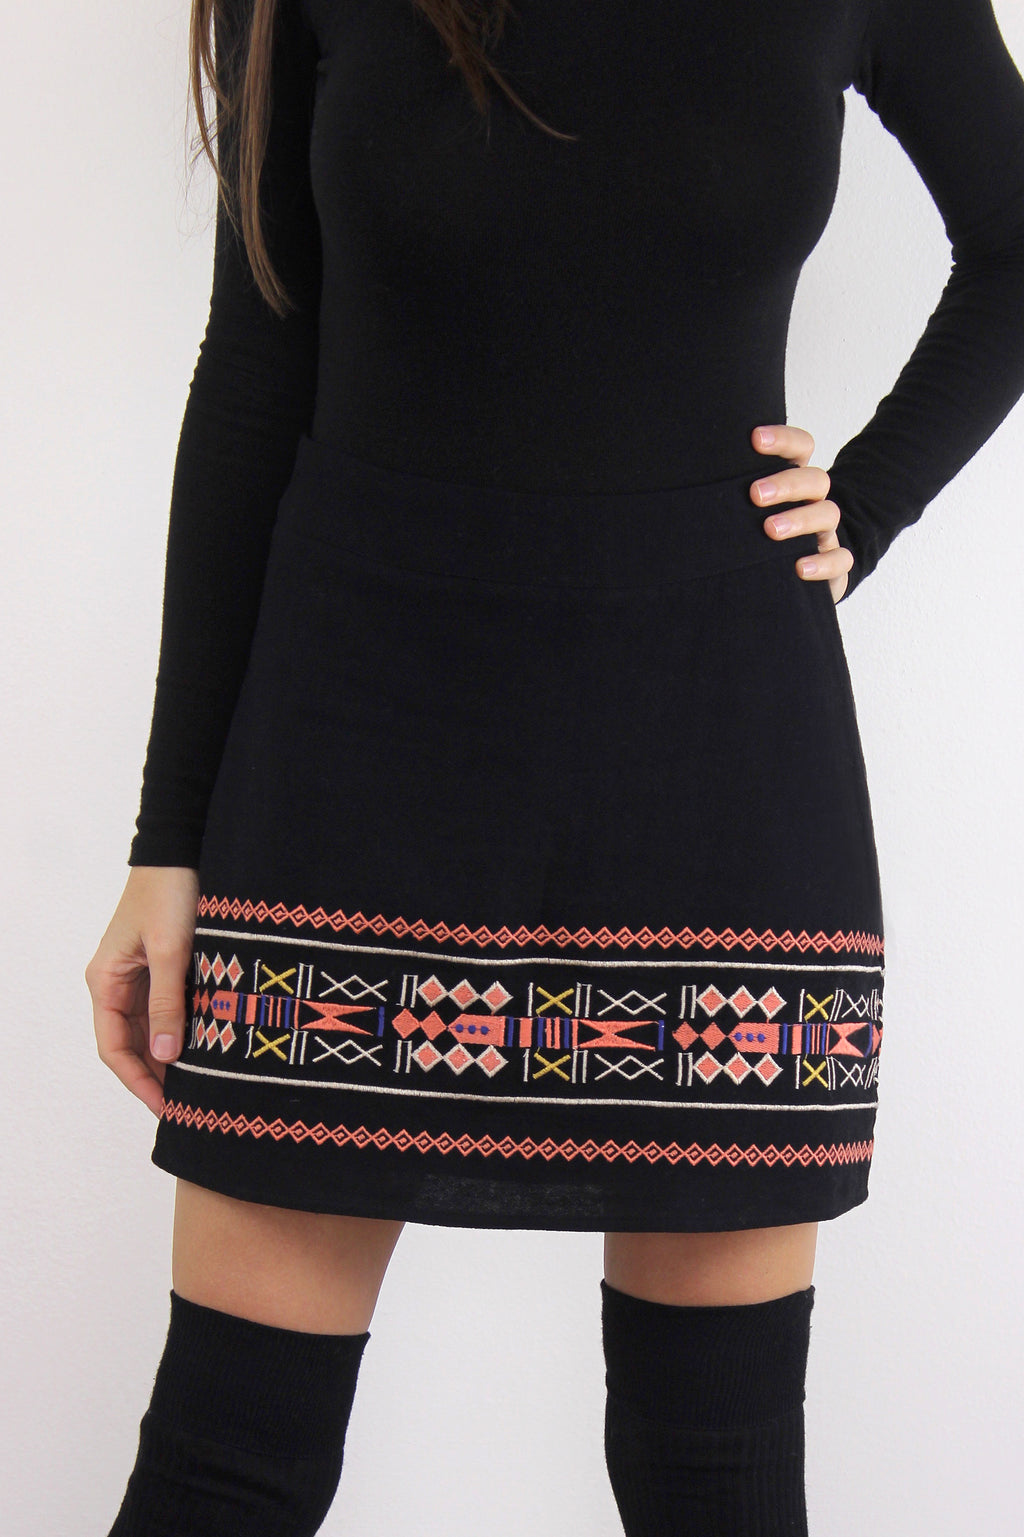 Black embroidered mini skirt. 3